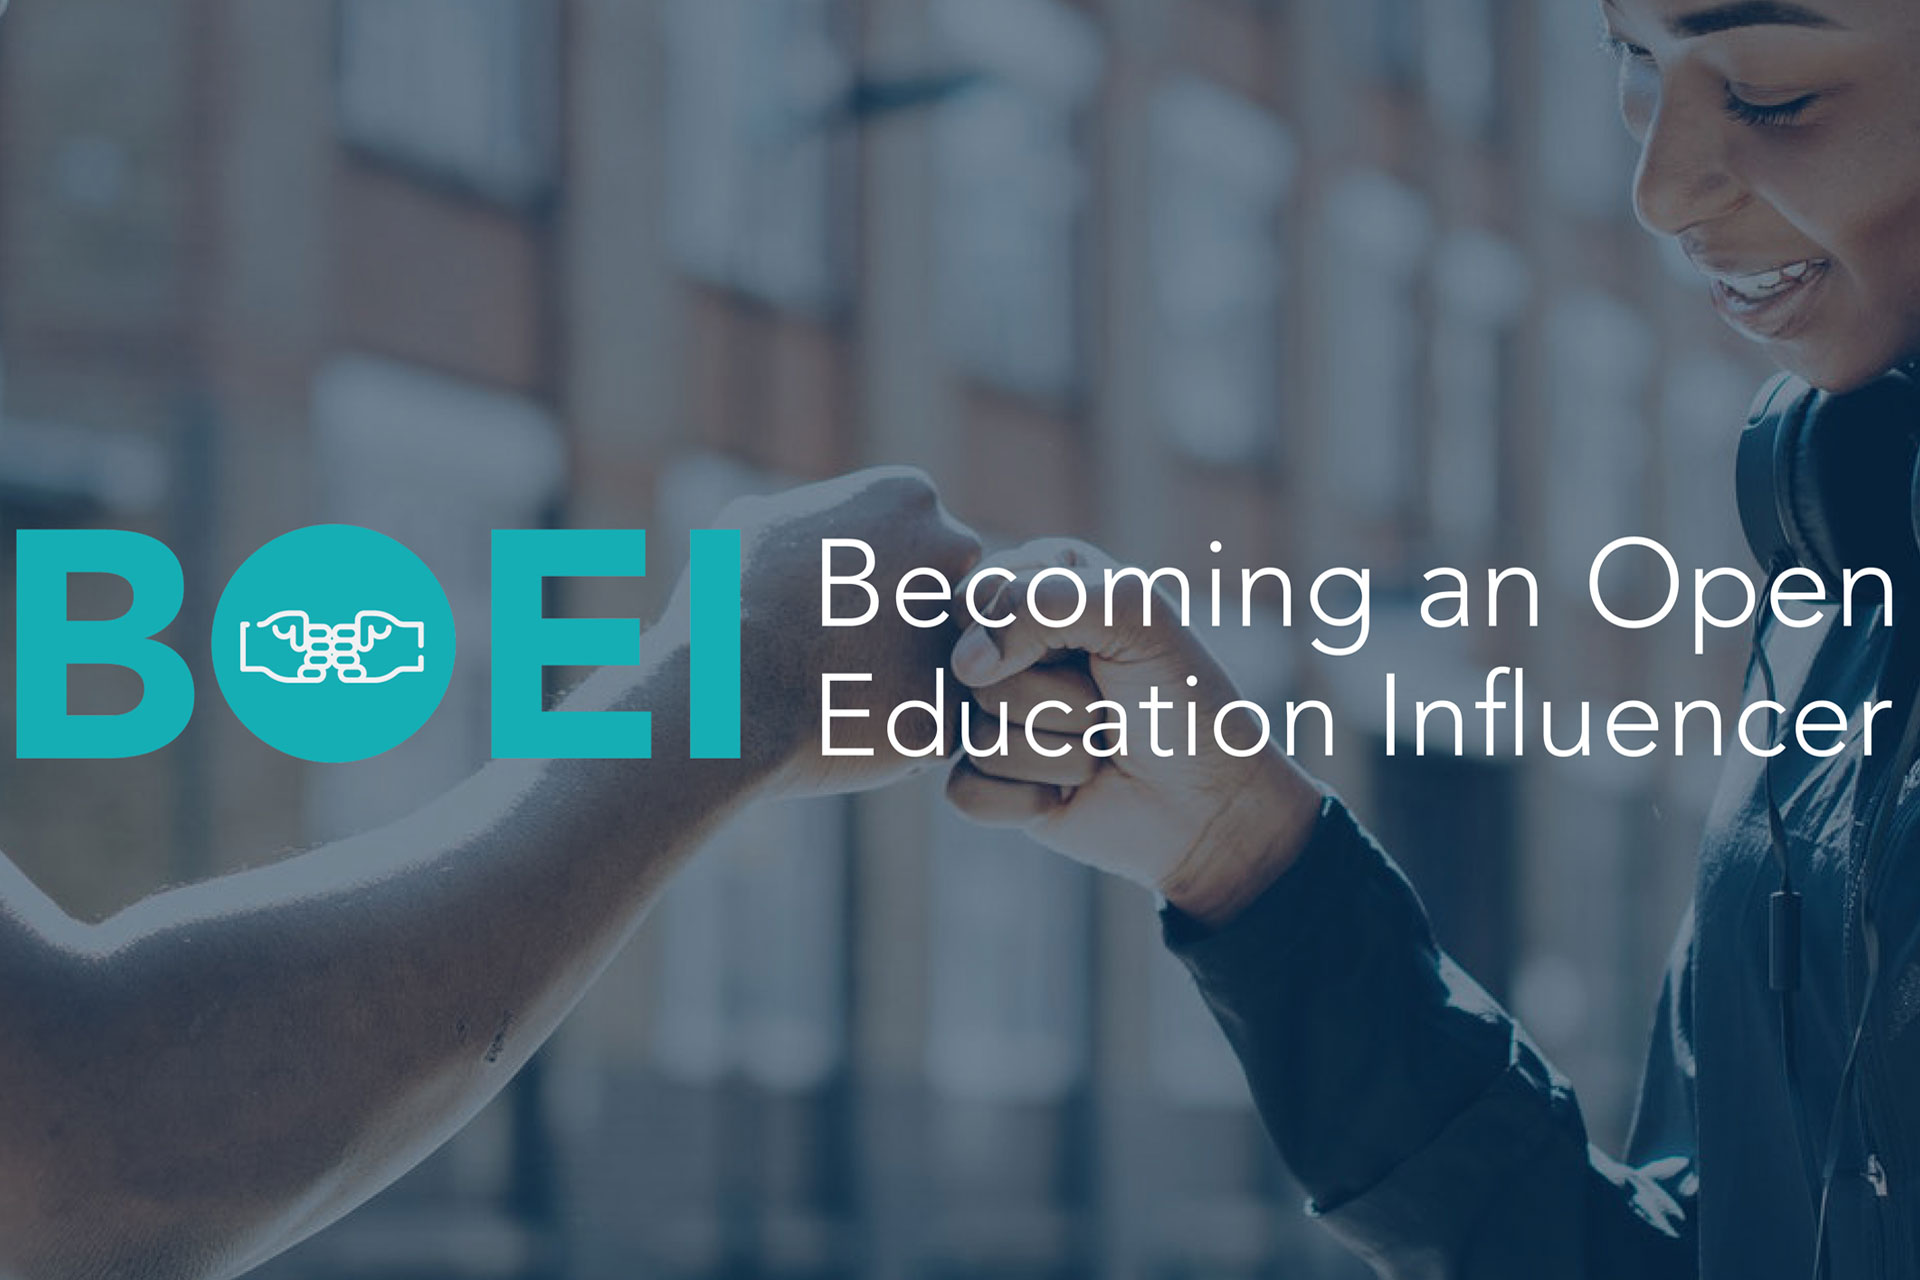 open-education-influencer-2